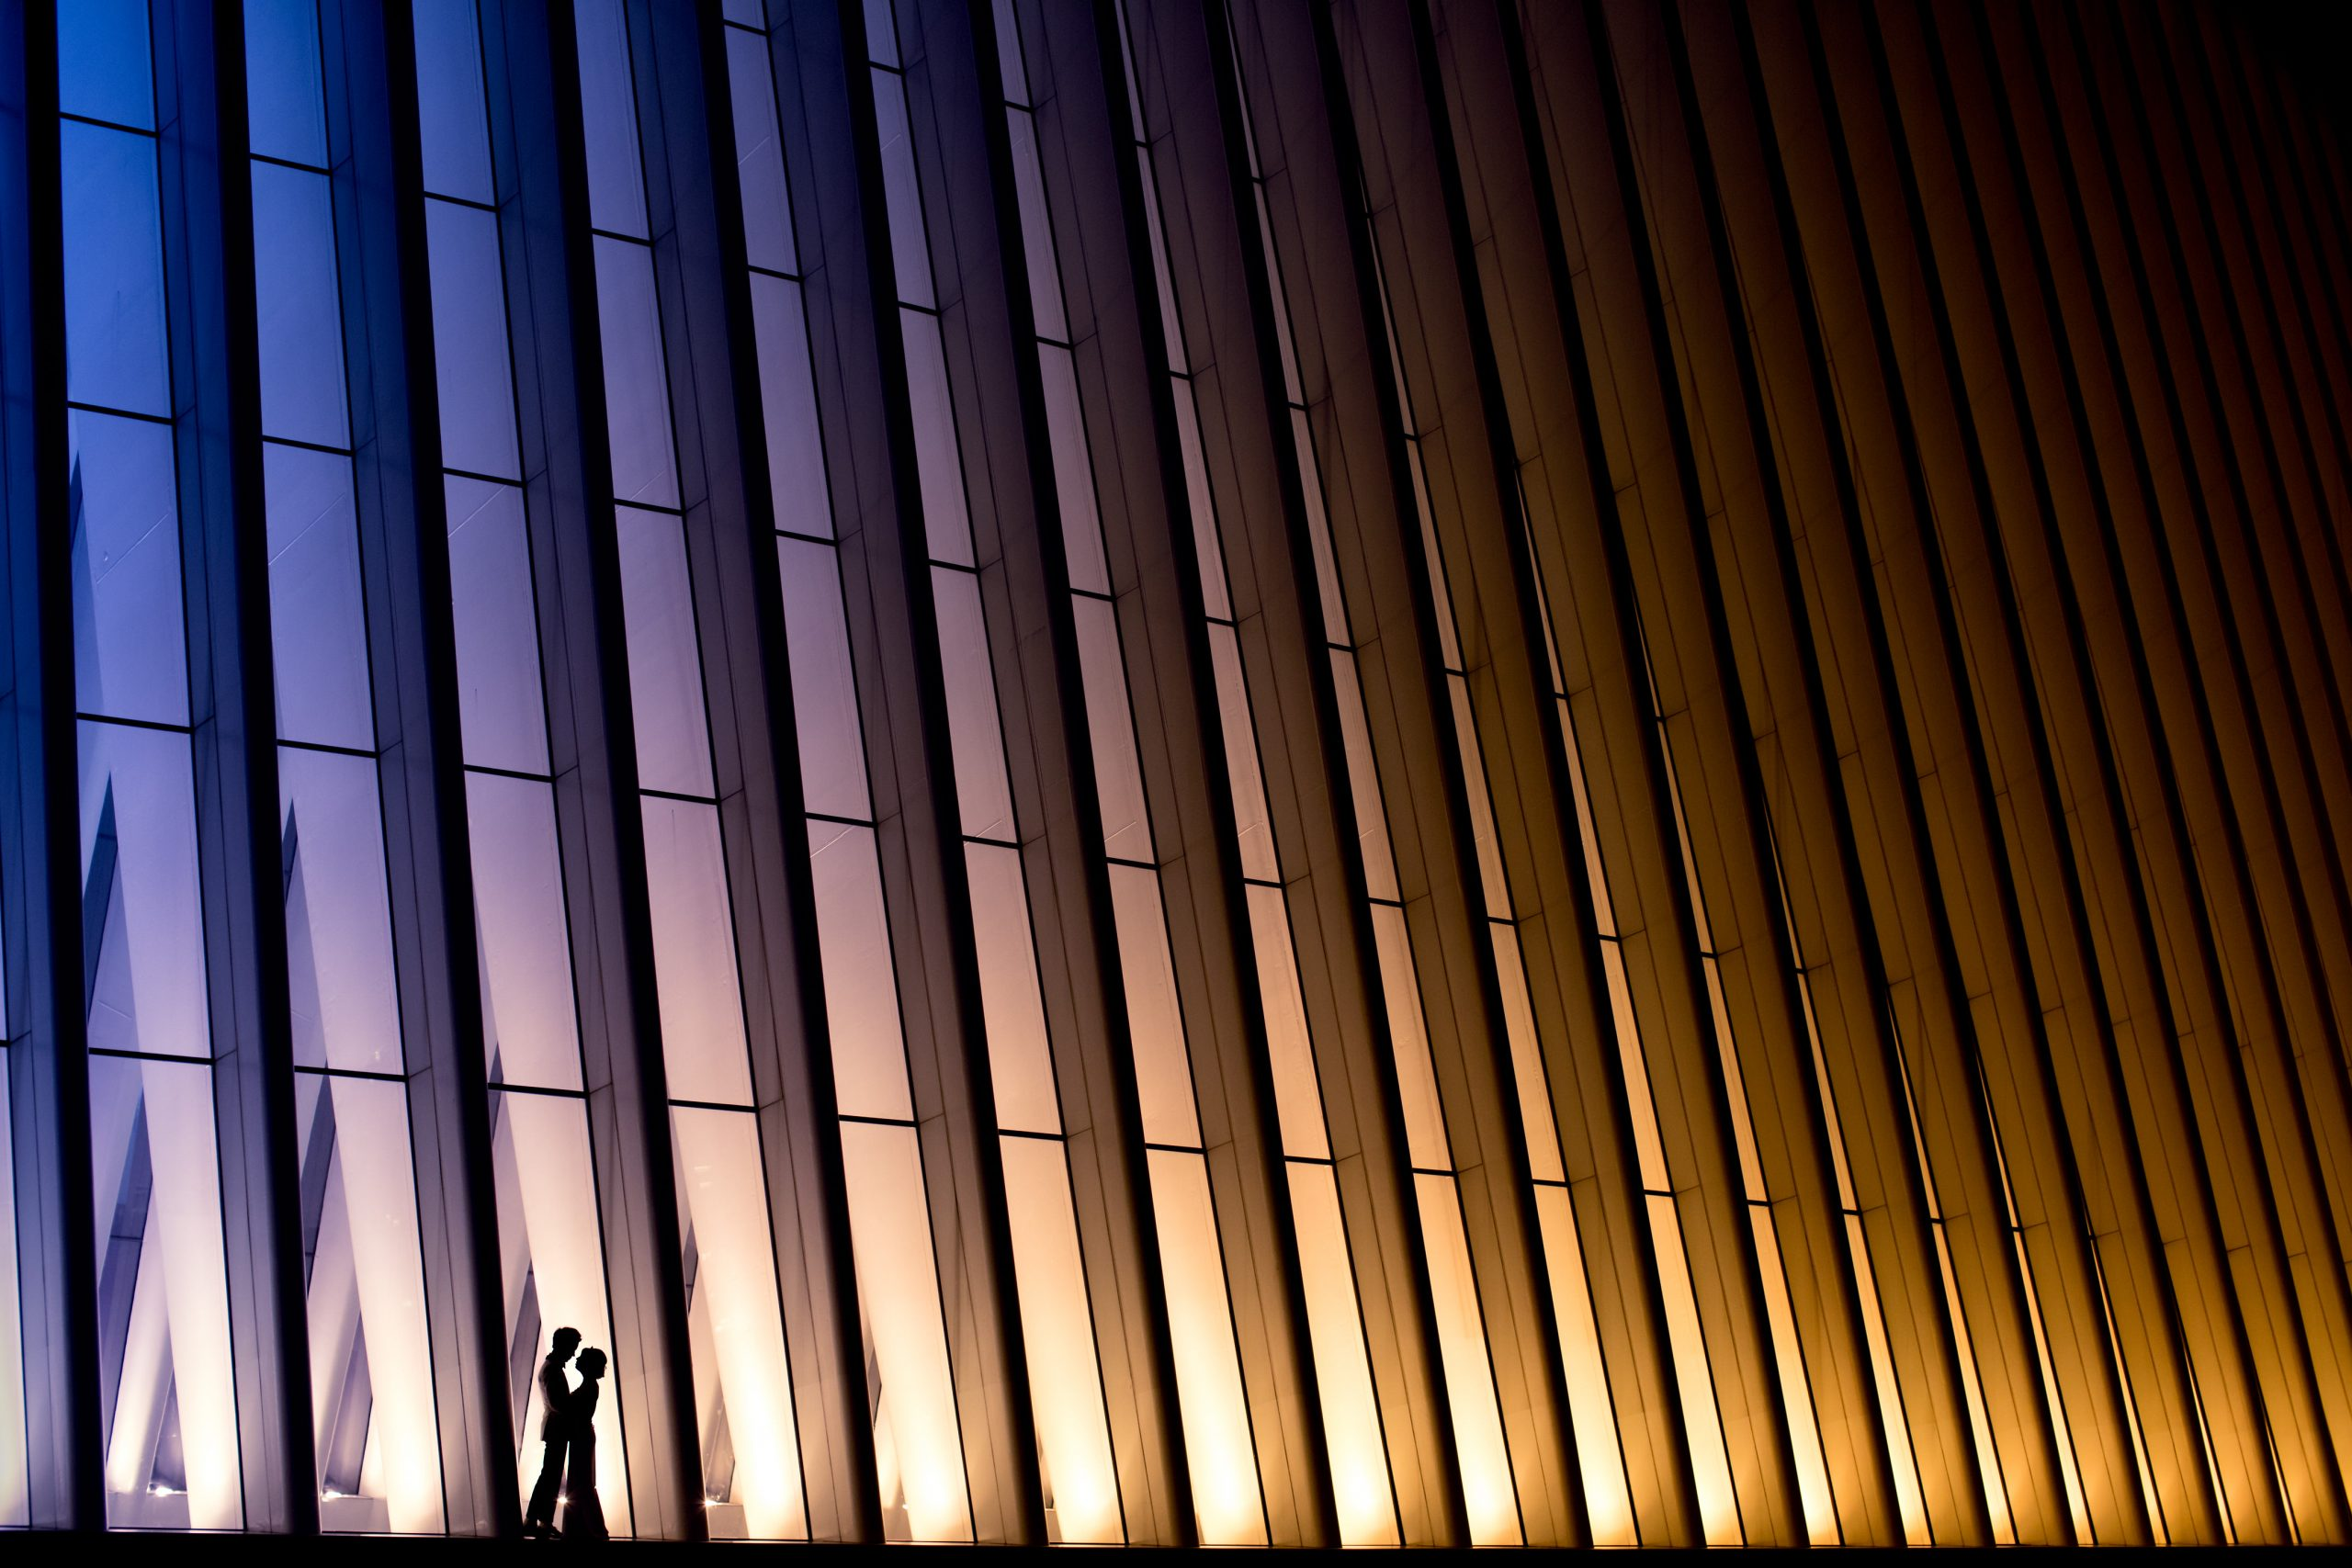 Silhouette of couple's embracing with background of glass panel building